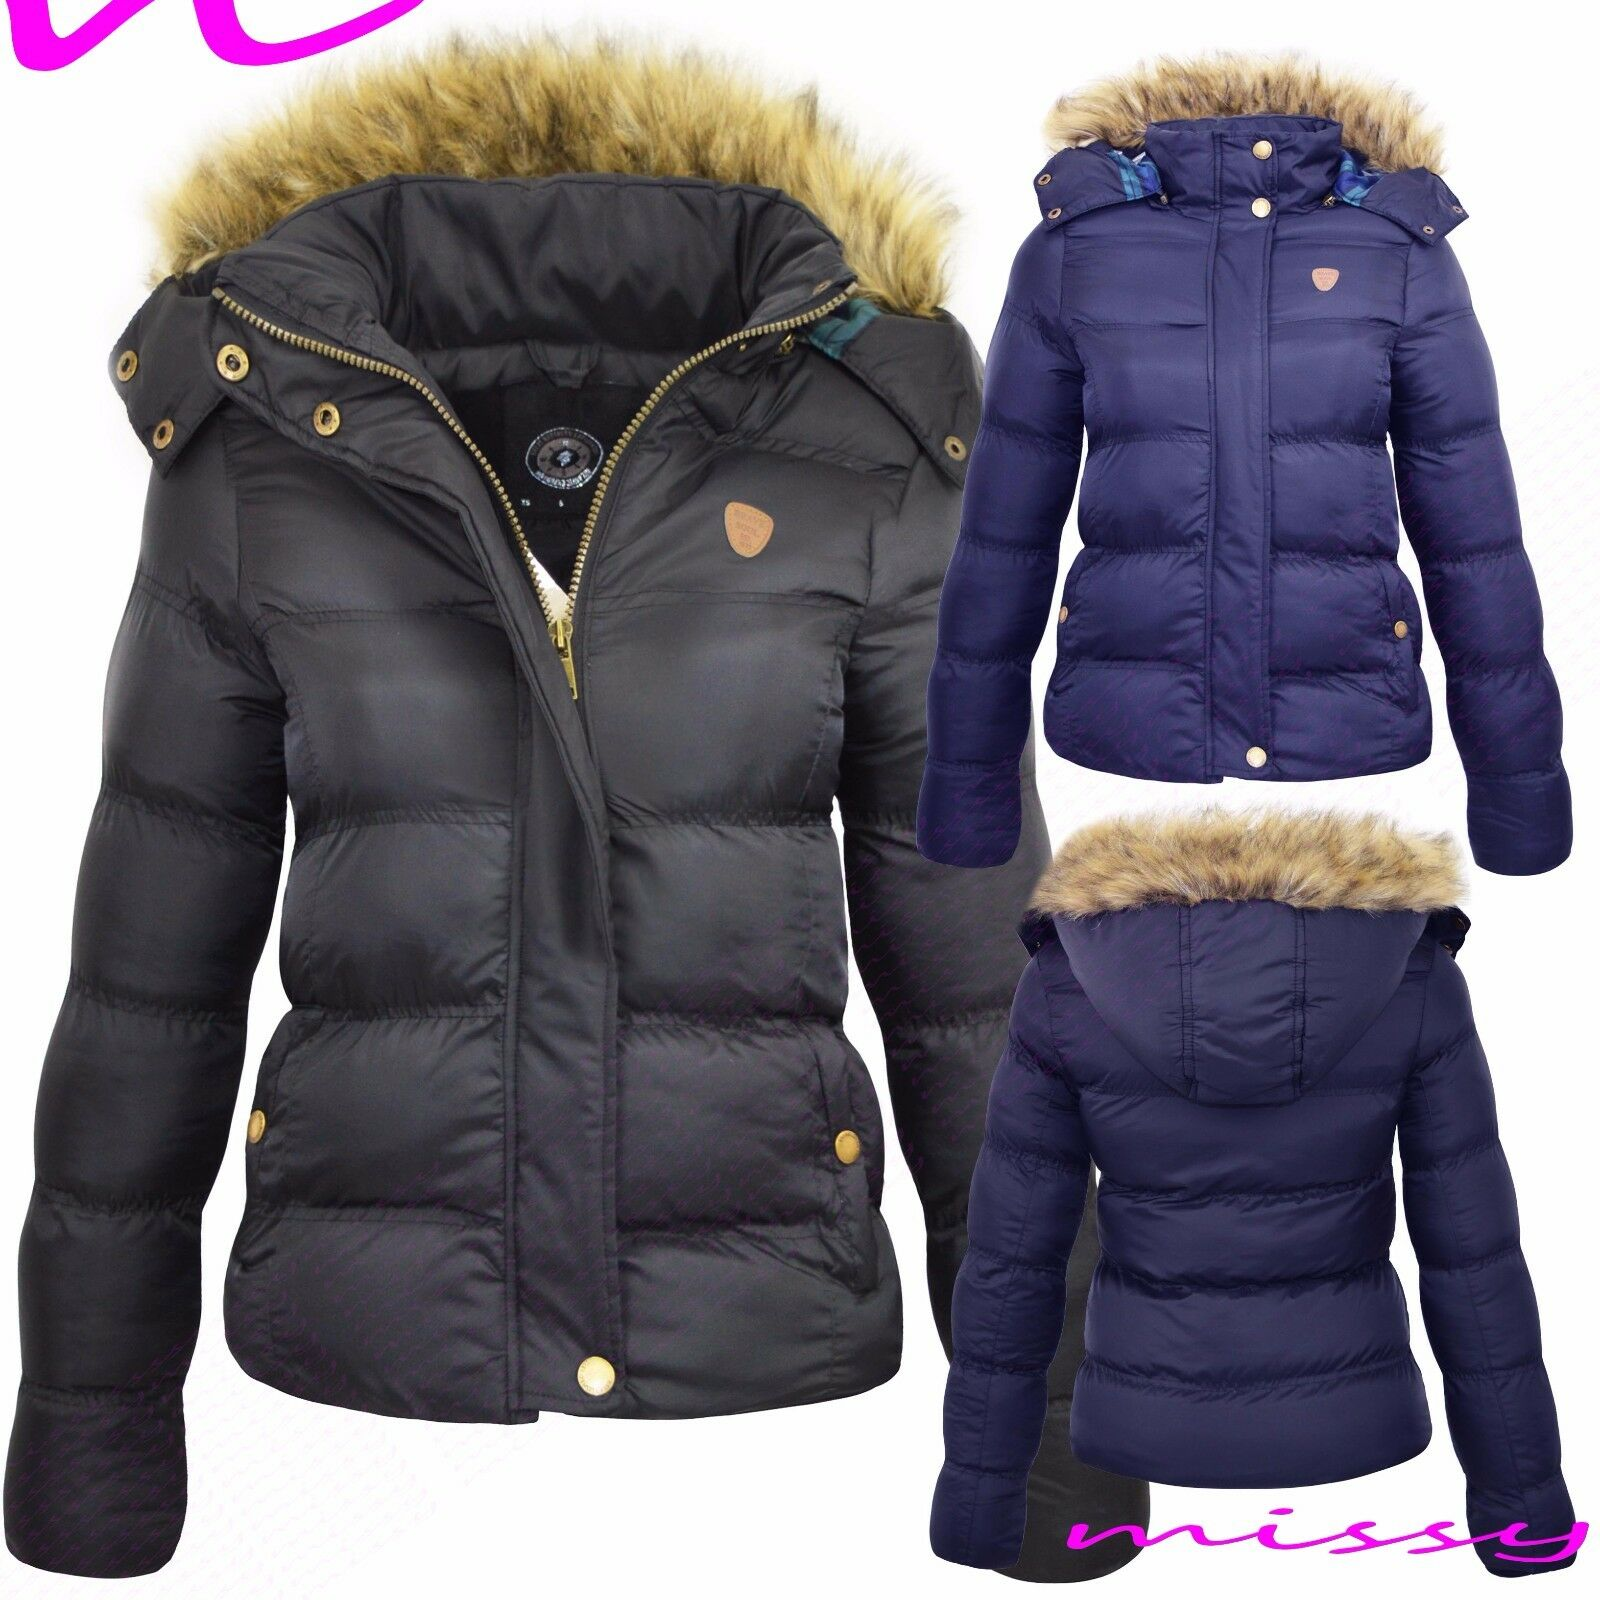 Winter puffer jackets for women